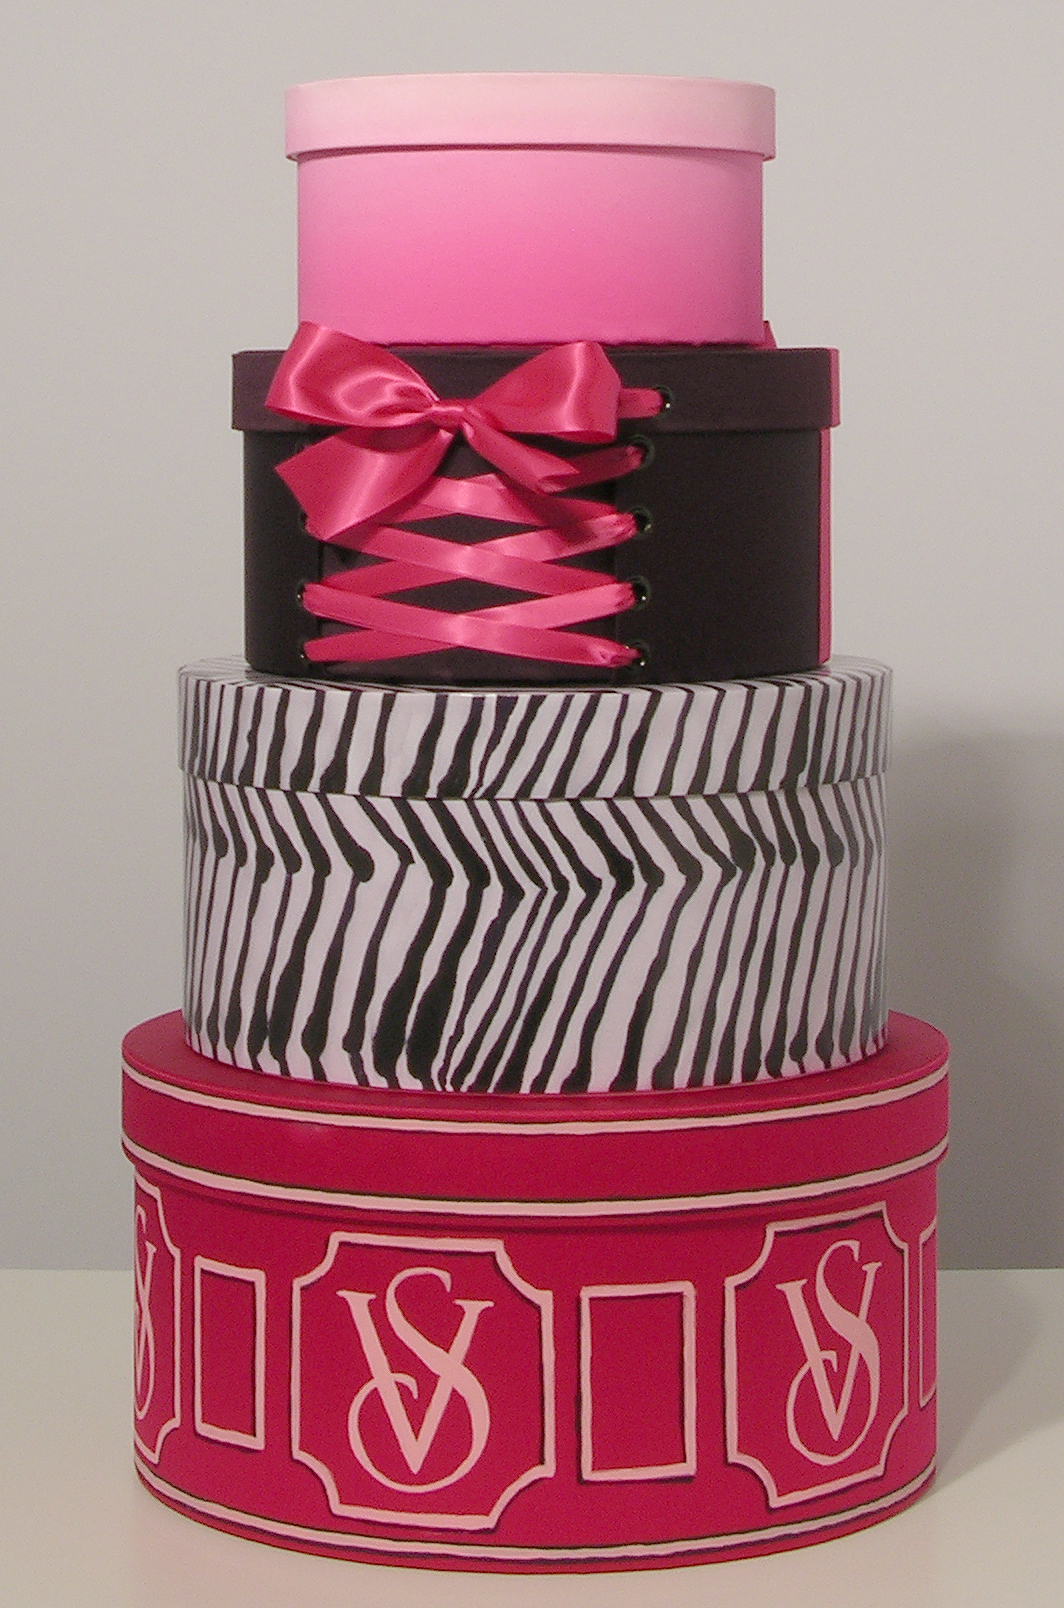 Hat boxes produced for Victoria's Secret stores worldwide.